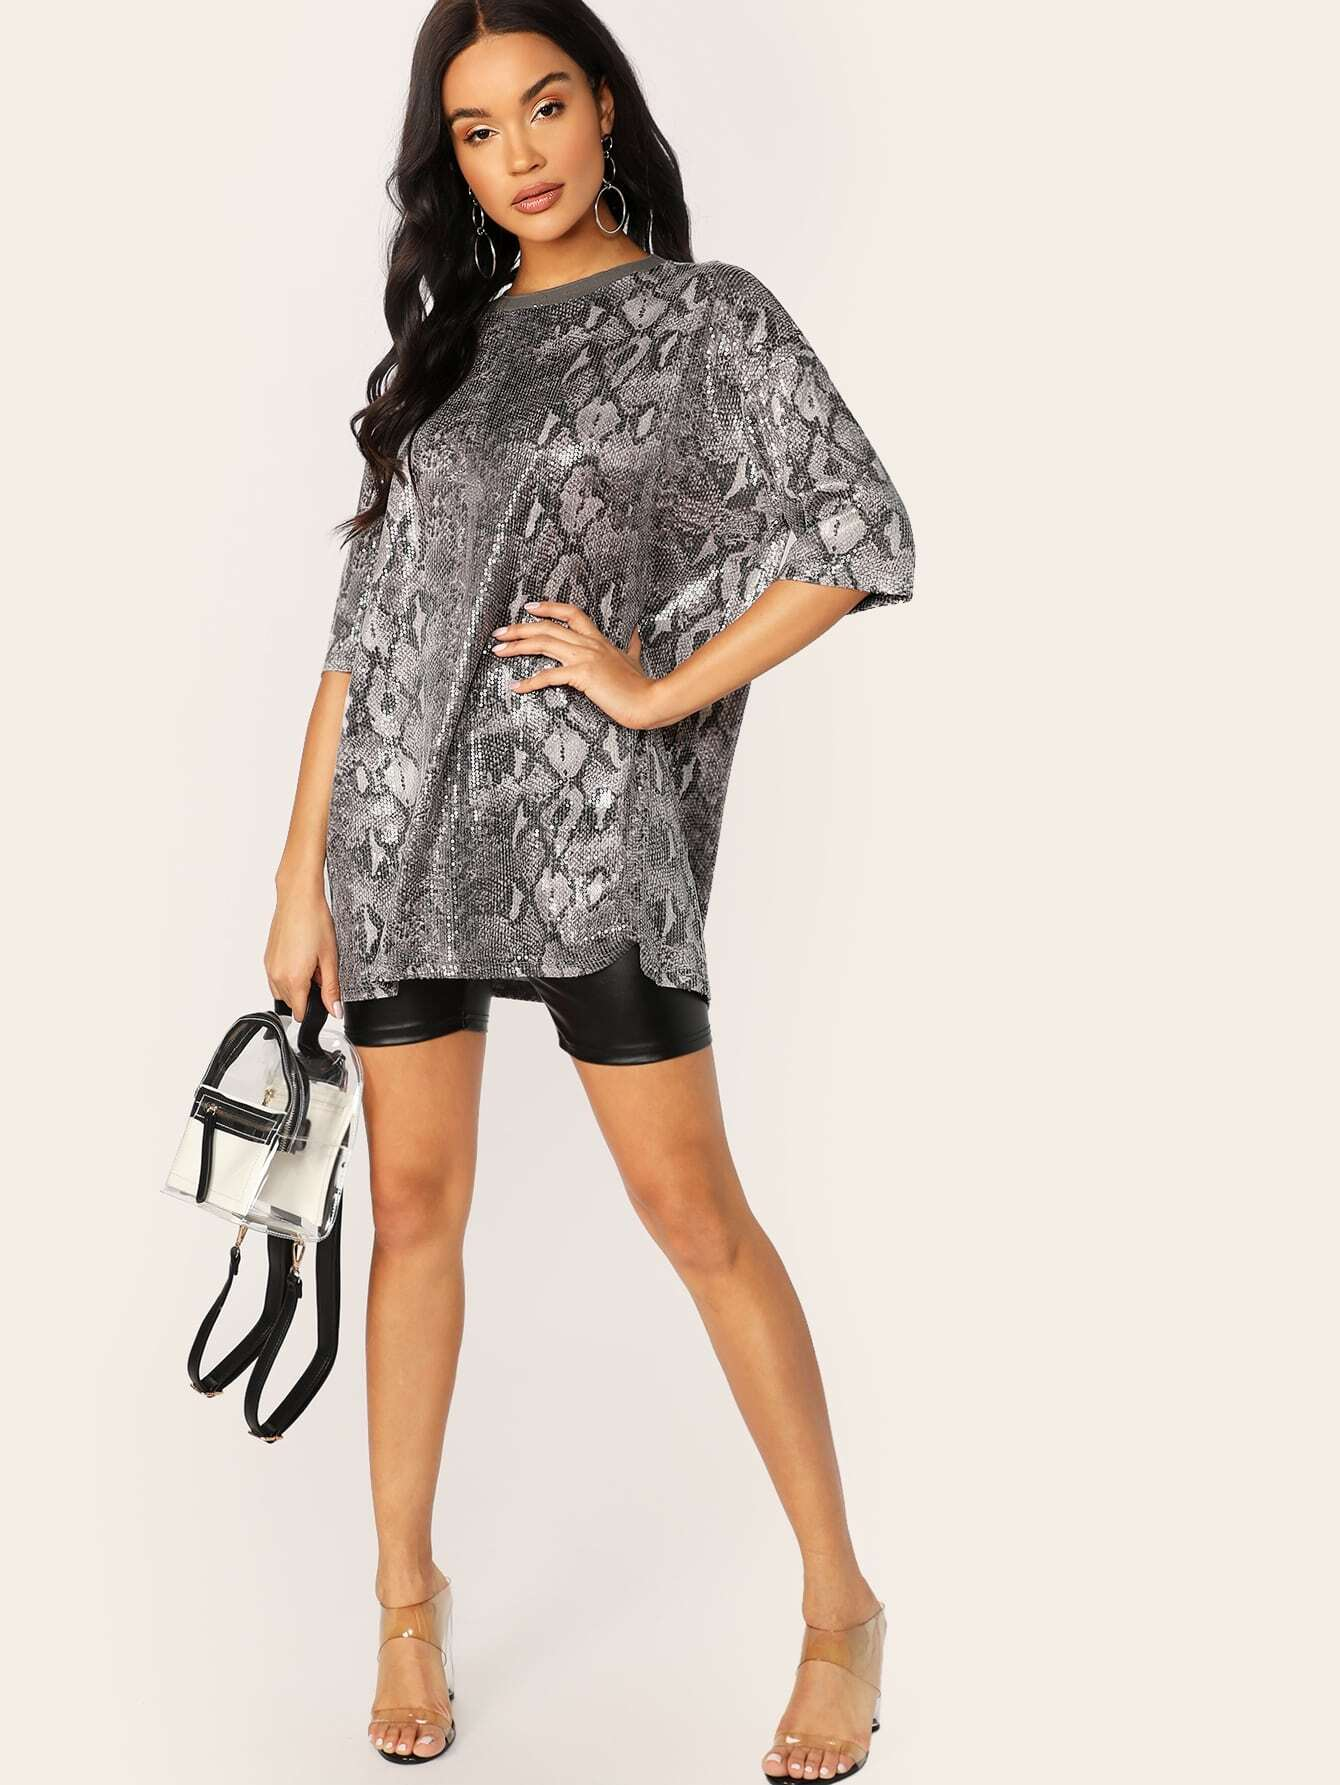 860935e4 Oversized Sequin Snake Print Boxy Fit T-Shirt | SHEIN